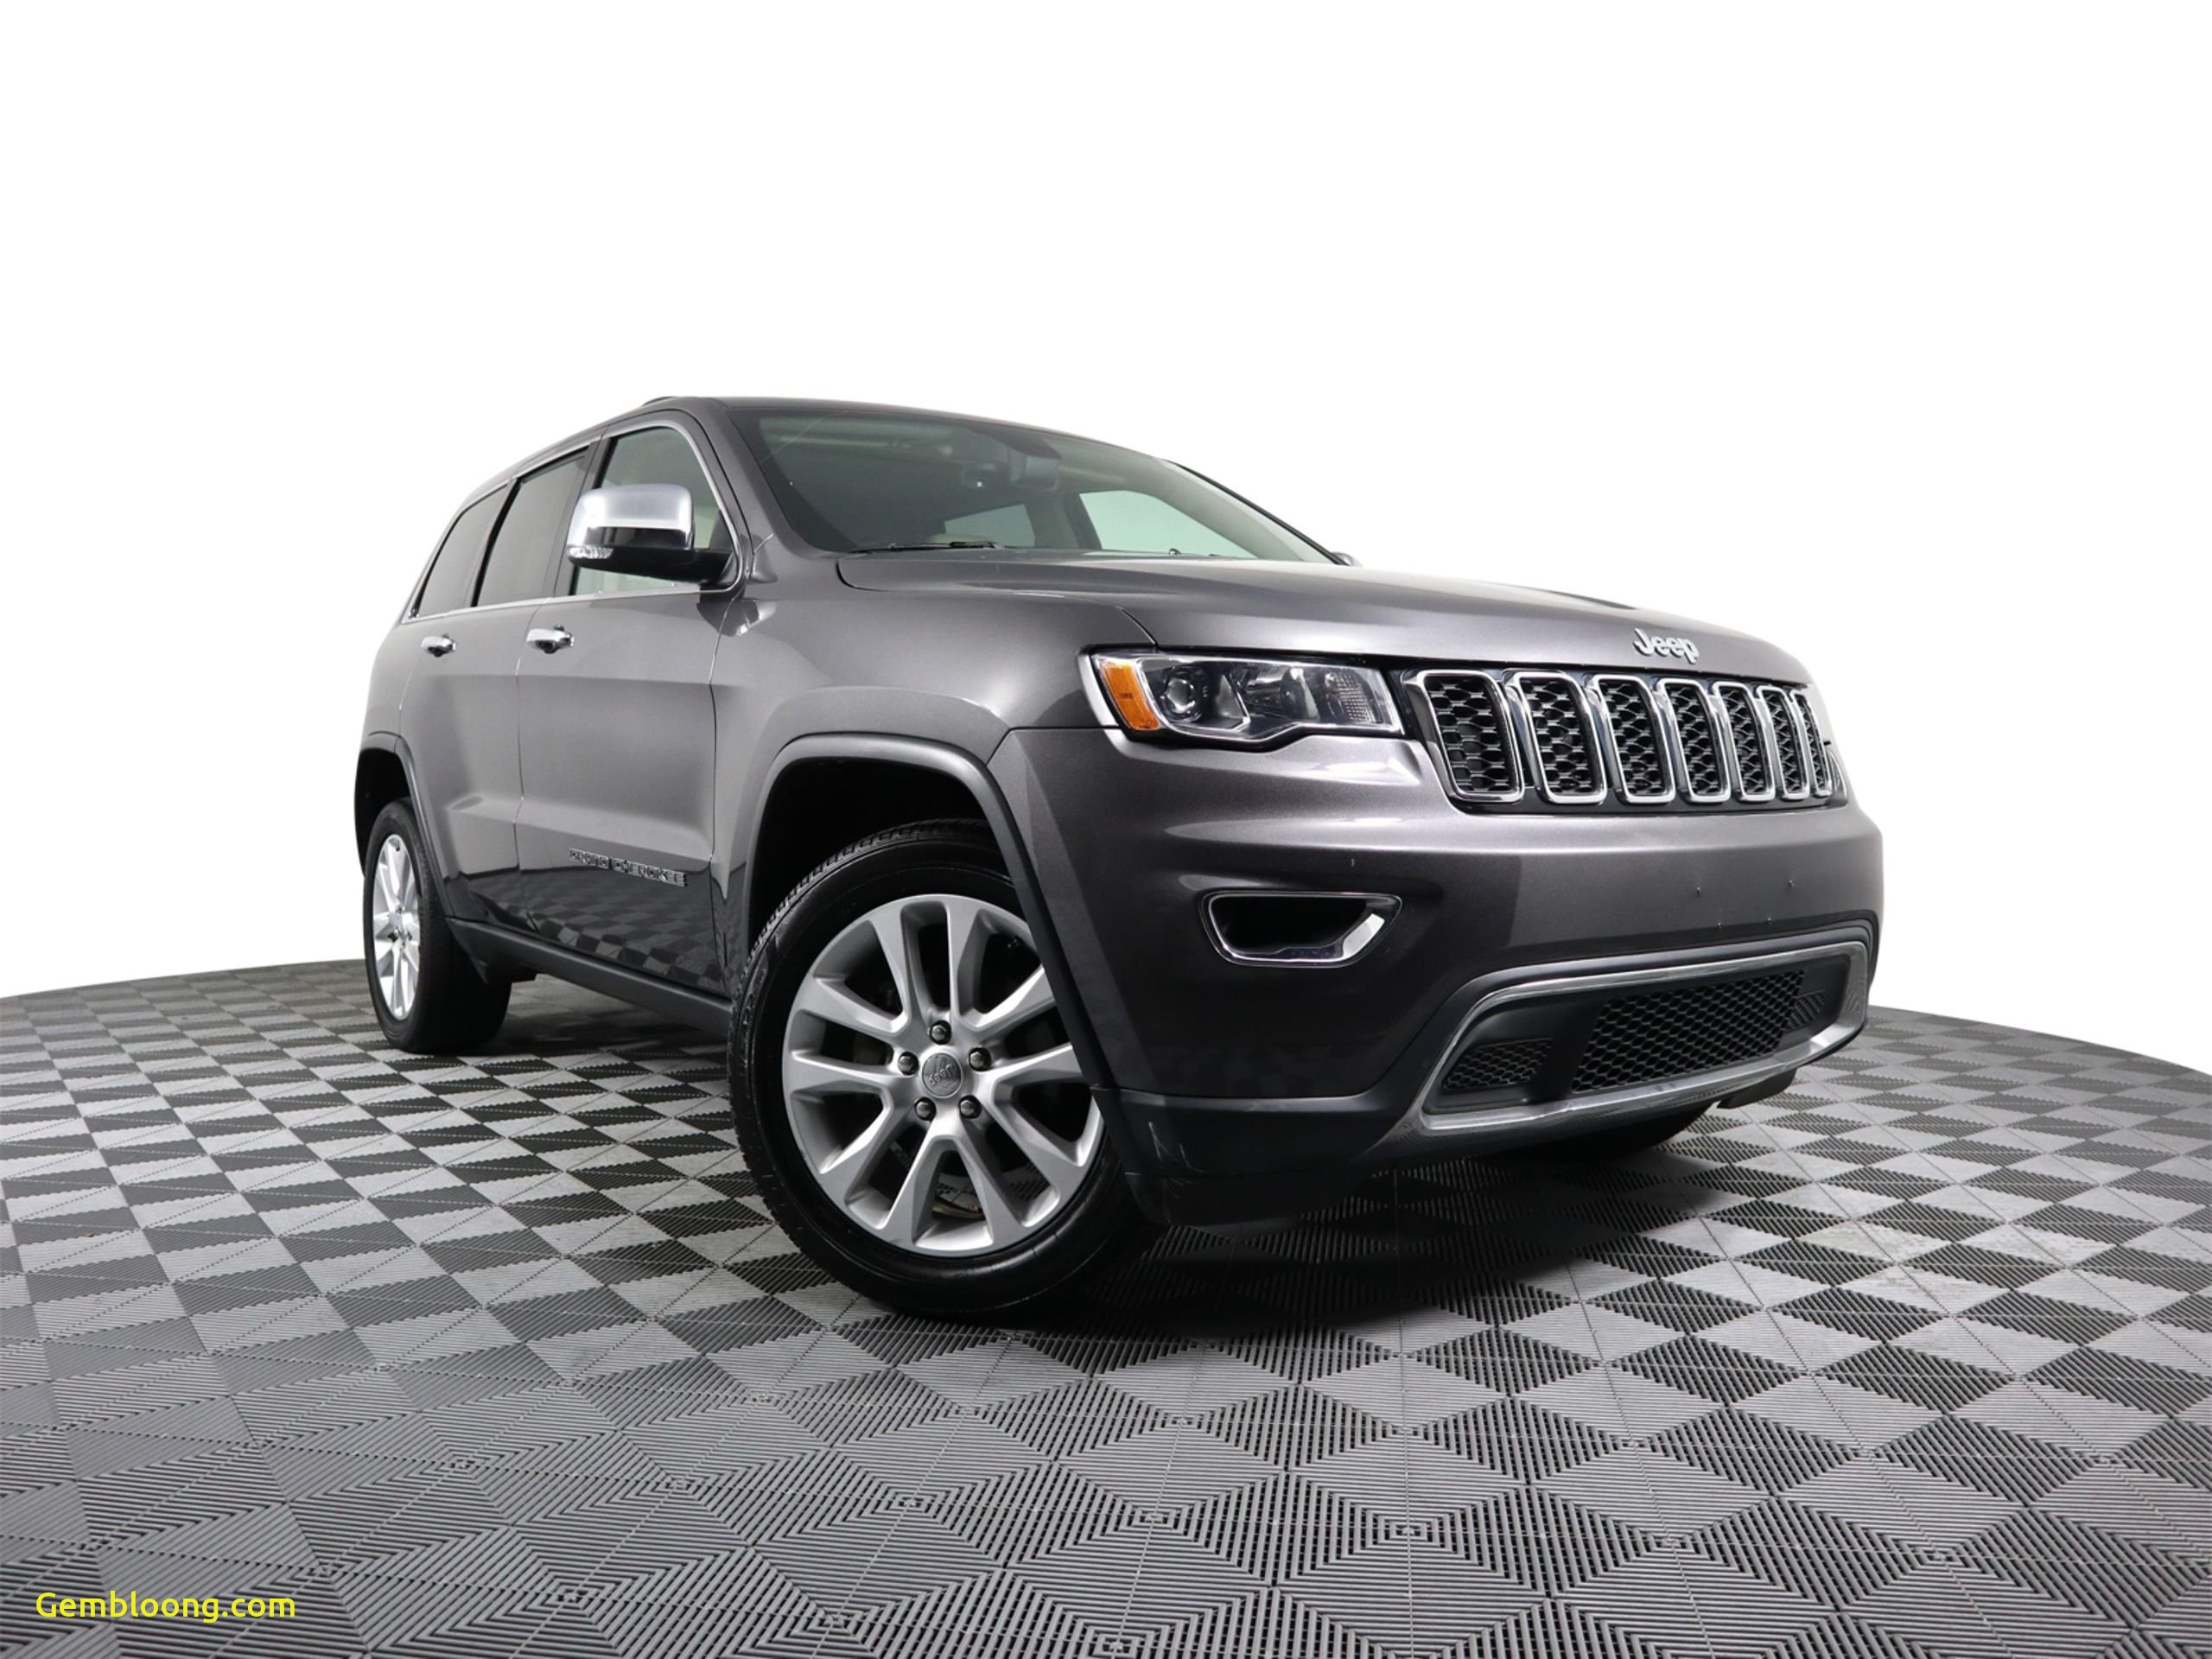 2017 Jeep Grand Cherokee Limited Elegant 2017 Jeep Grand Cherokee Limited with Navigation & 4wd